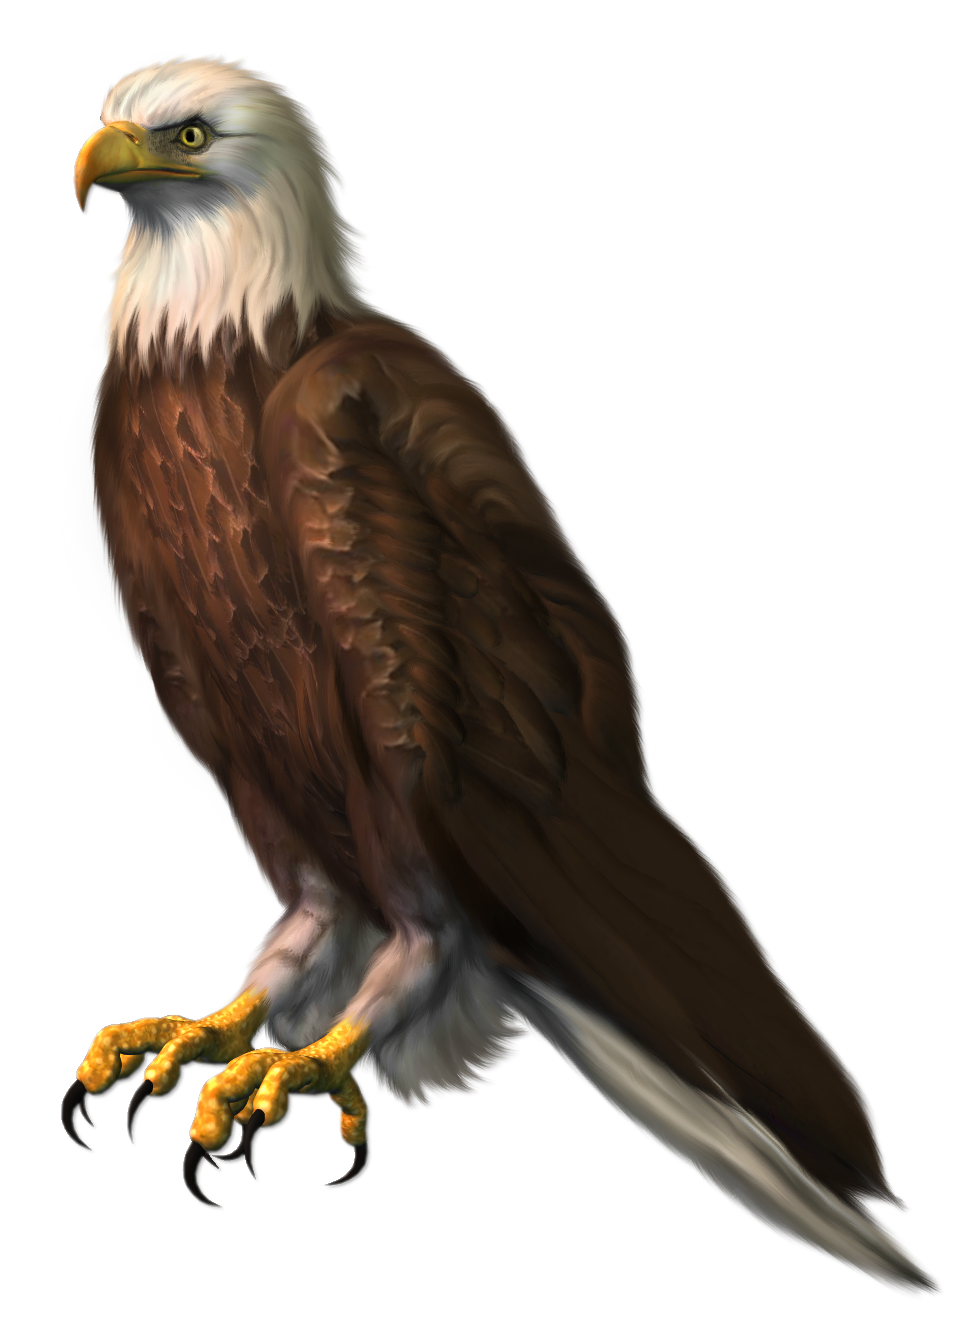 clipart transparent library Eagle transparent png picture. Gallery clipart eagel.